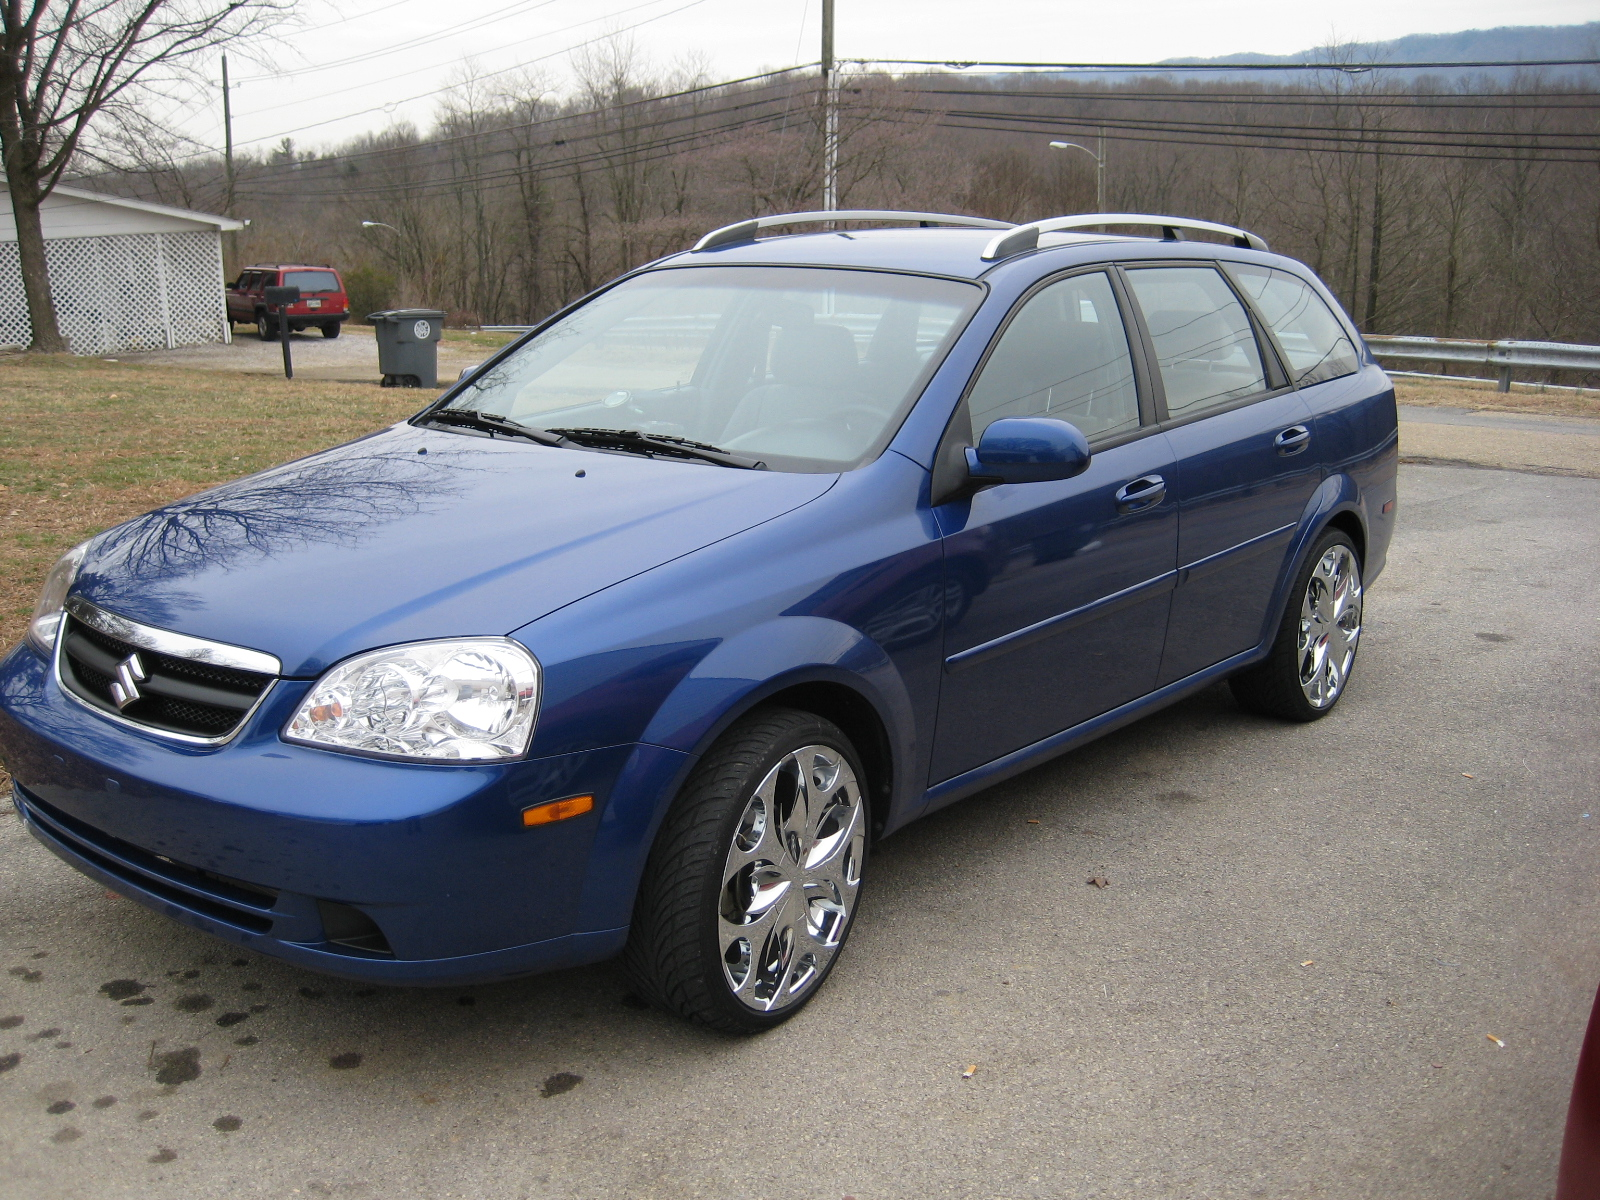 2007 Suzuki Forenza Popular Wagon picture